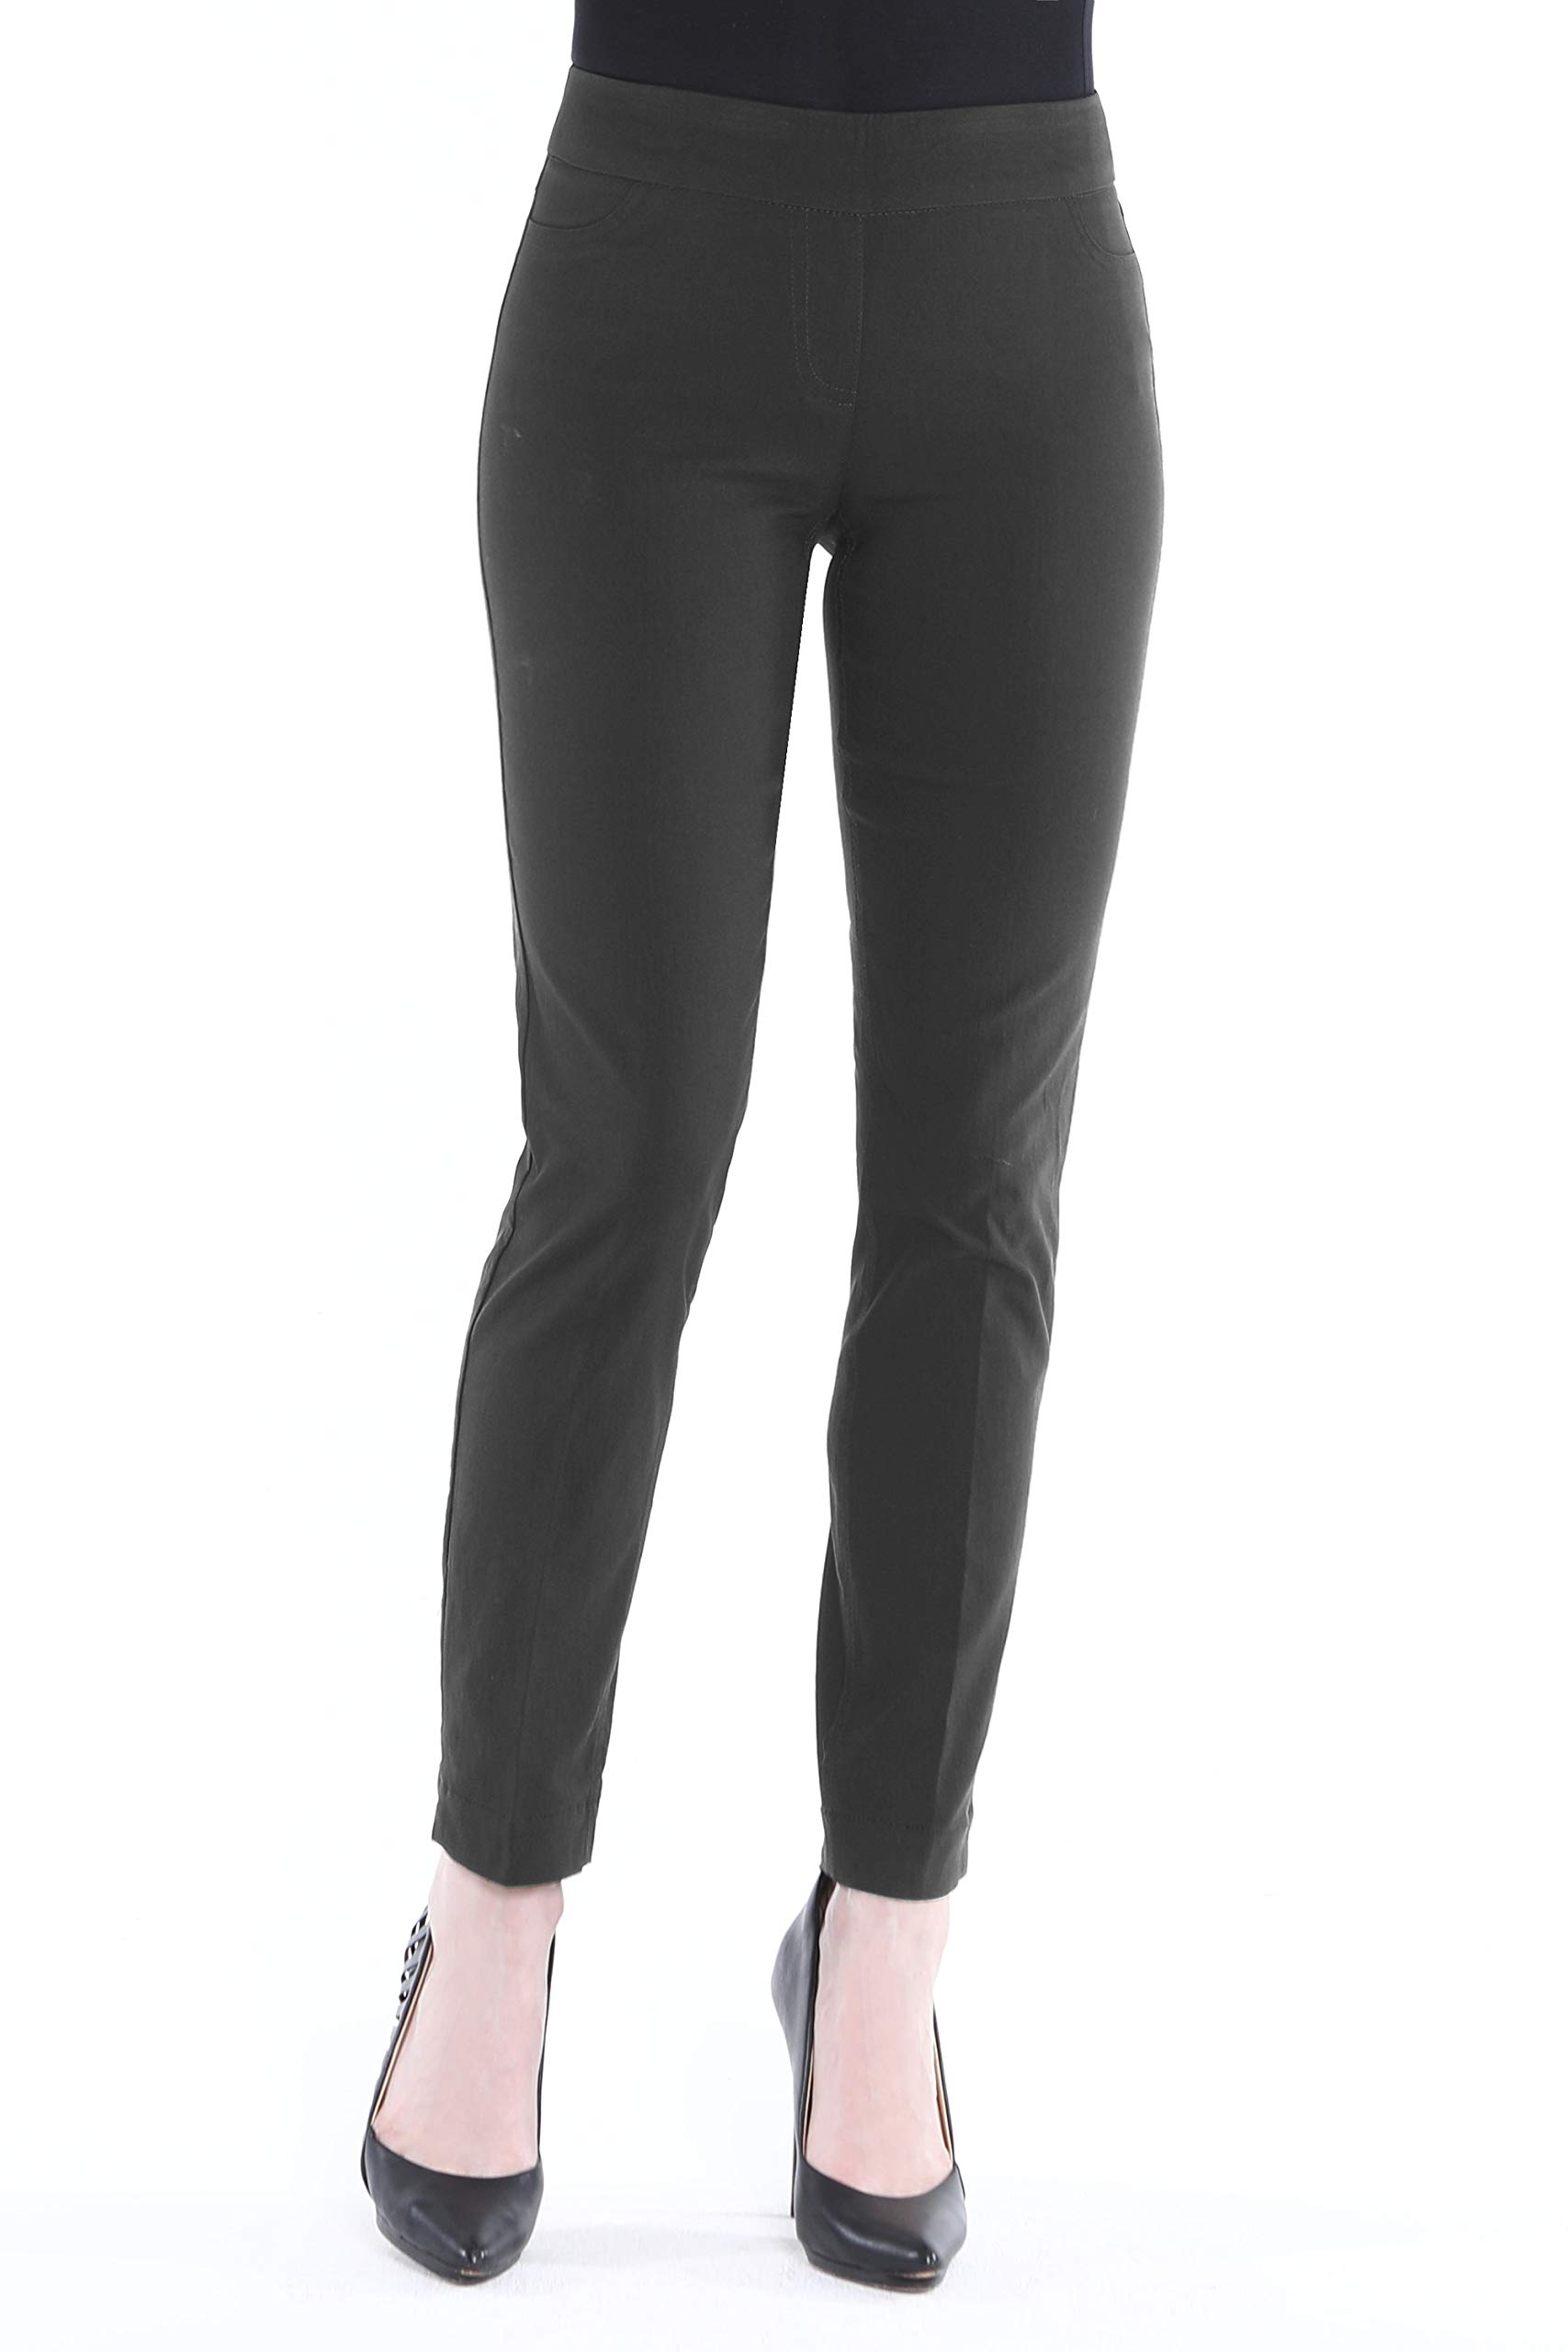 Vincenté Womens Clothing- Stretch Pants for Women - Womens Pull On Ankle Pants with Stretch Band Waist and Tummy Control, Color Charcoal Size 10